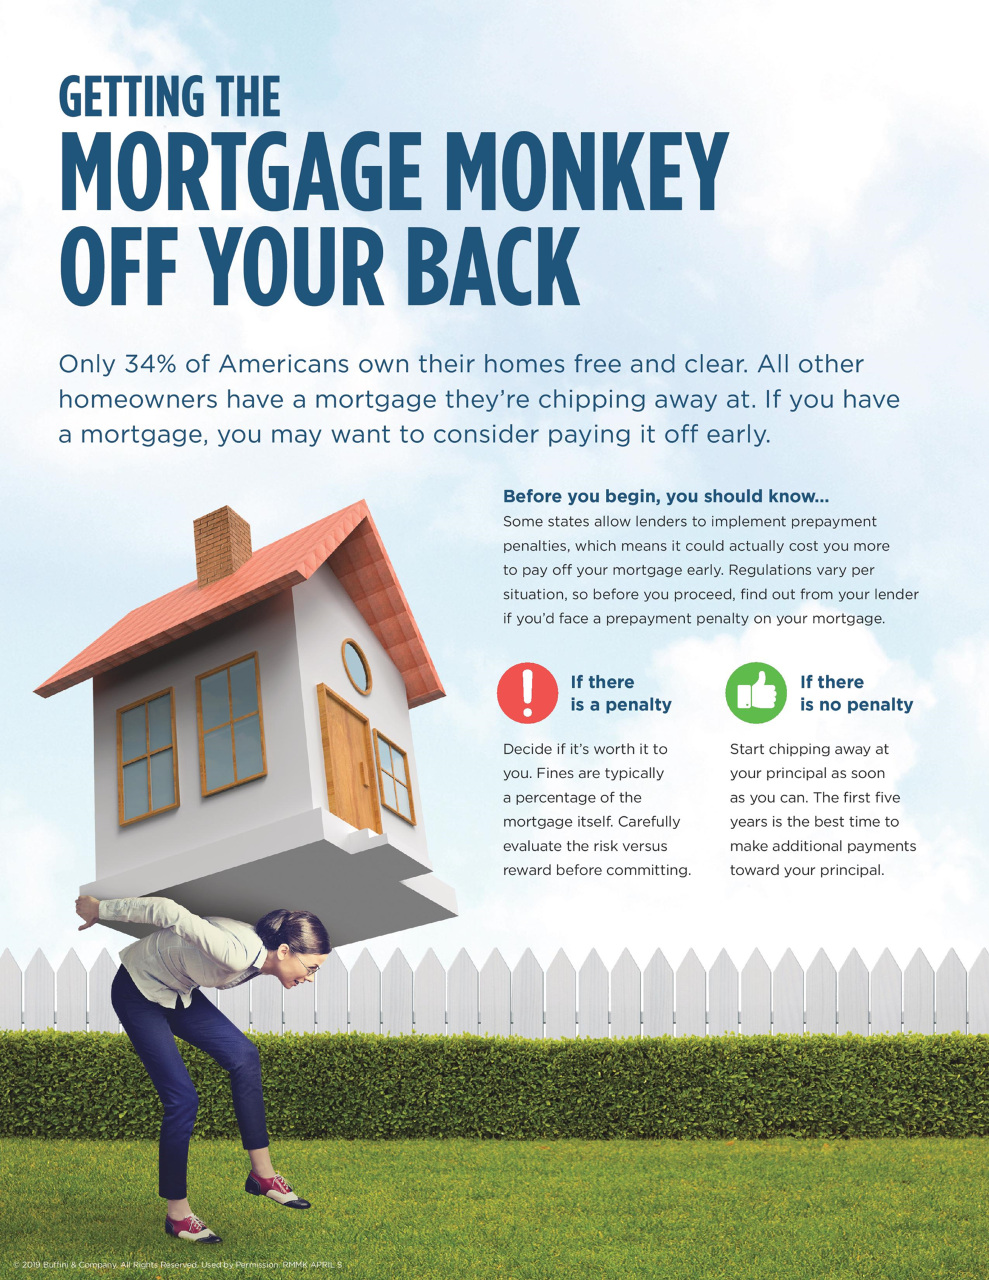 Only 34% of Americans own their own homes free and clear. All other homeowners have a mortgage they're chipping away at. If you have a mortgage, you may want to consider paying it off early. Before you begin you should know some states allow lenders to implement prepayment penalties, which means it could actually cost you more to pay off your mortgage early. So, check with your lender to see if you have a prepayment penalty on your mortgage.